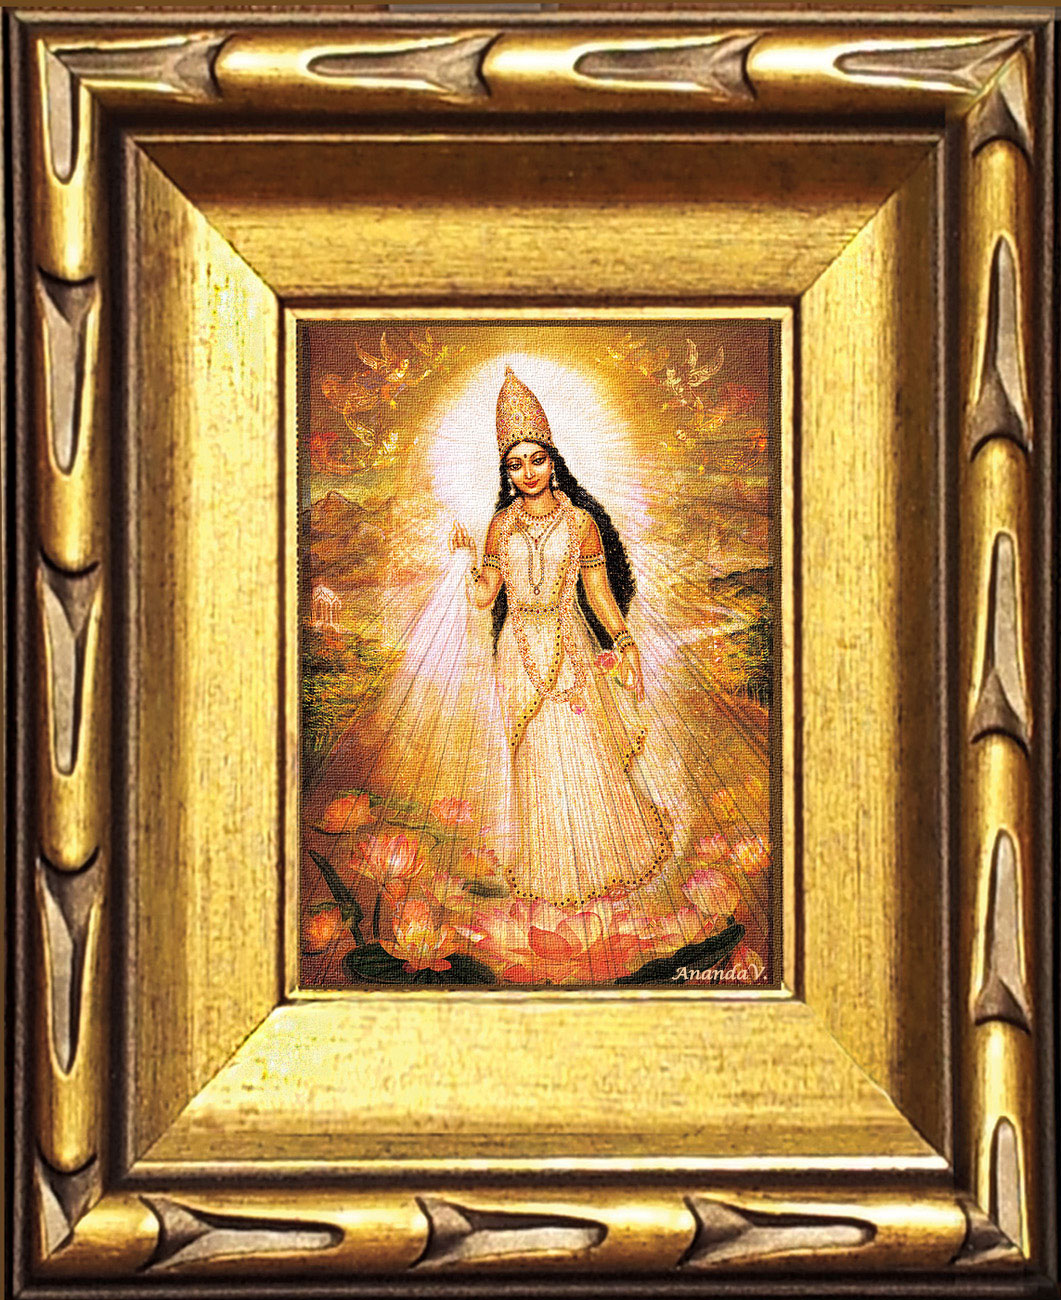 Parashakti Devi - The Great Mother Goddess with Angels